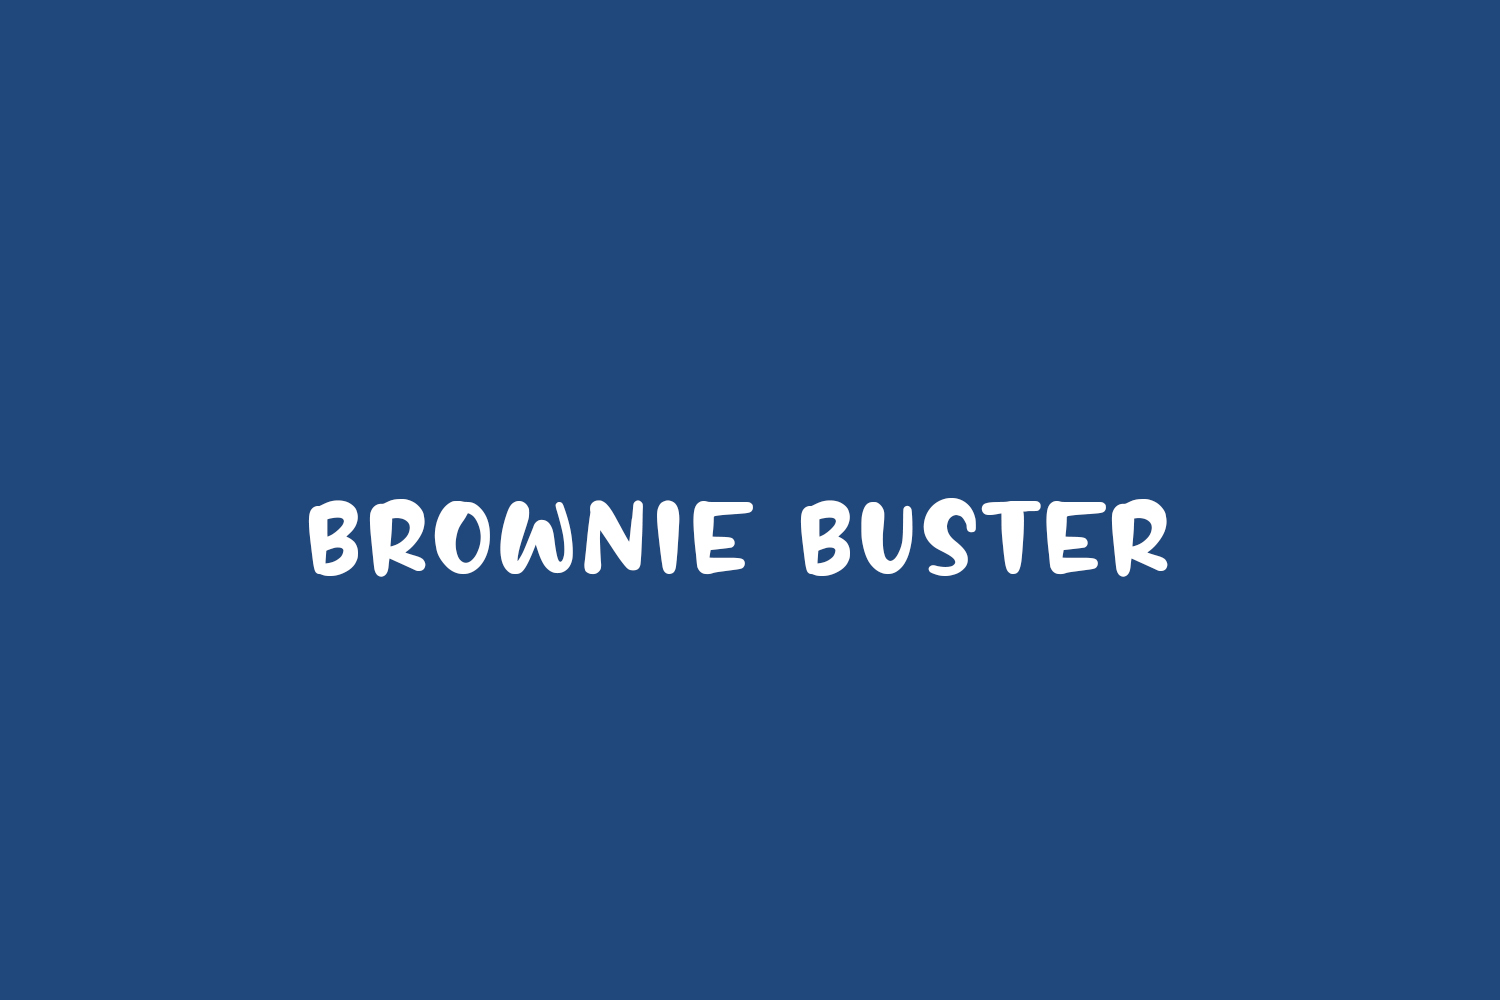 Brownie Buster Free Font